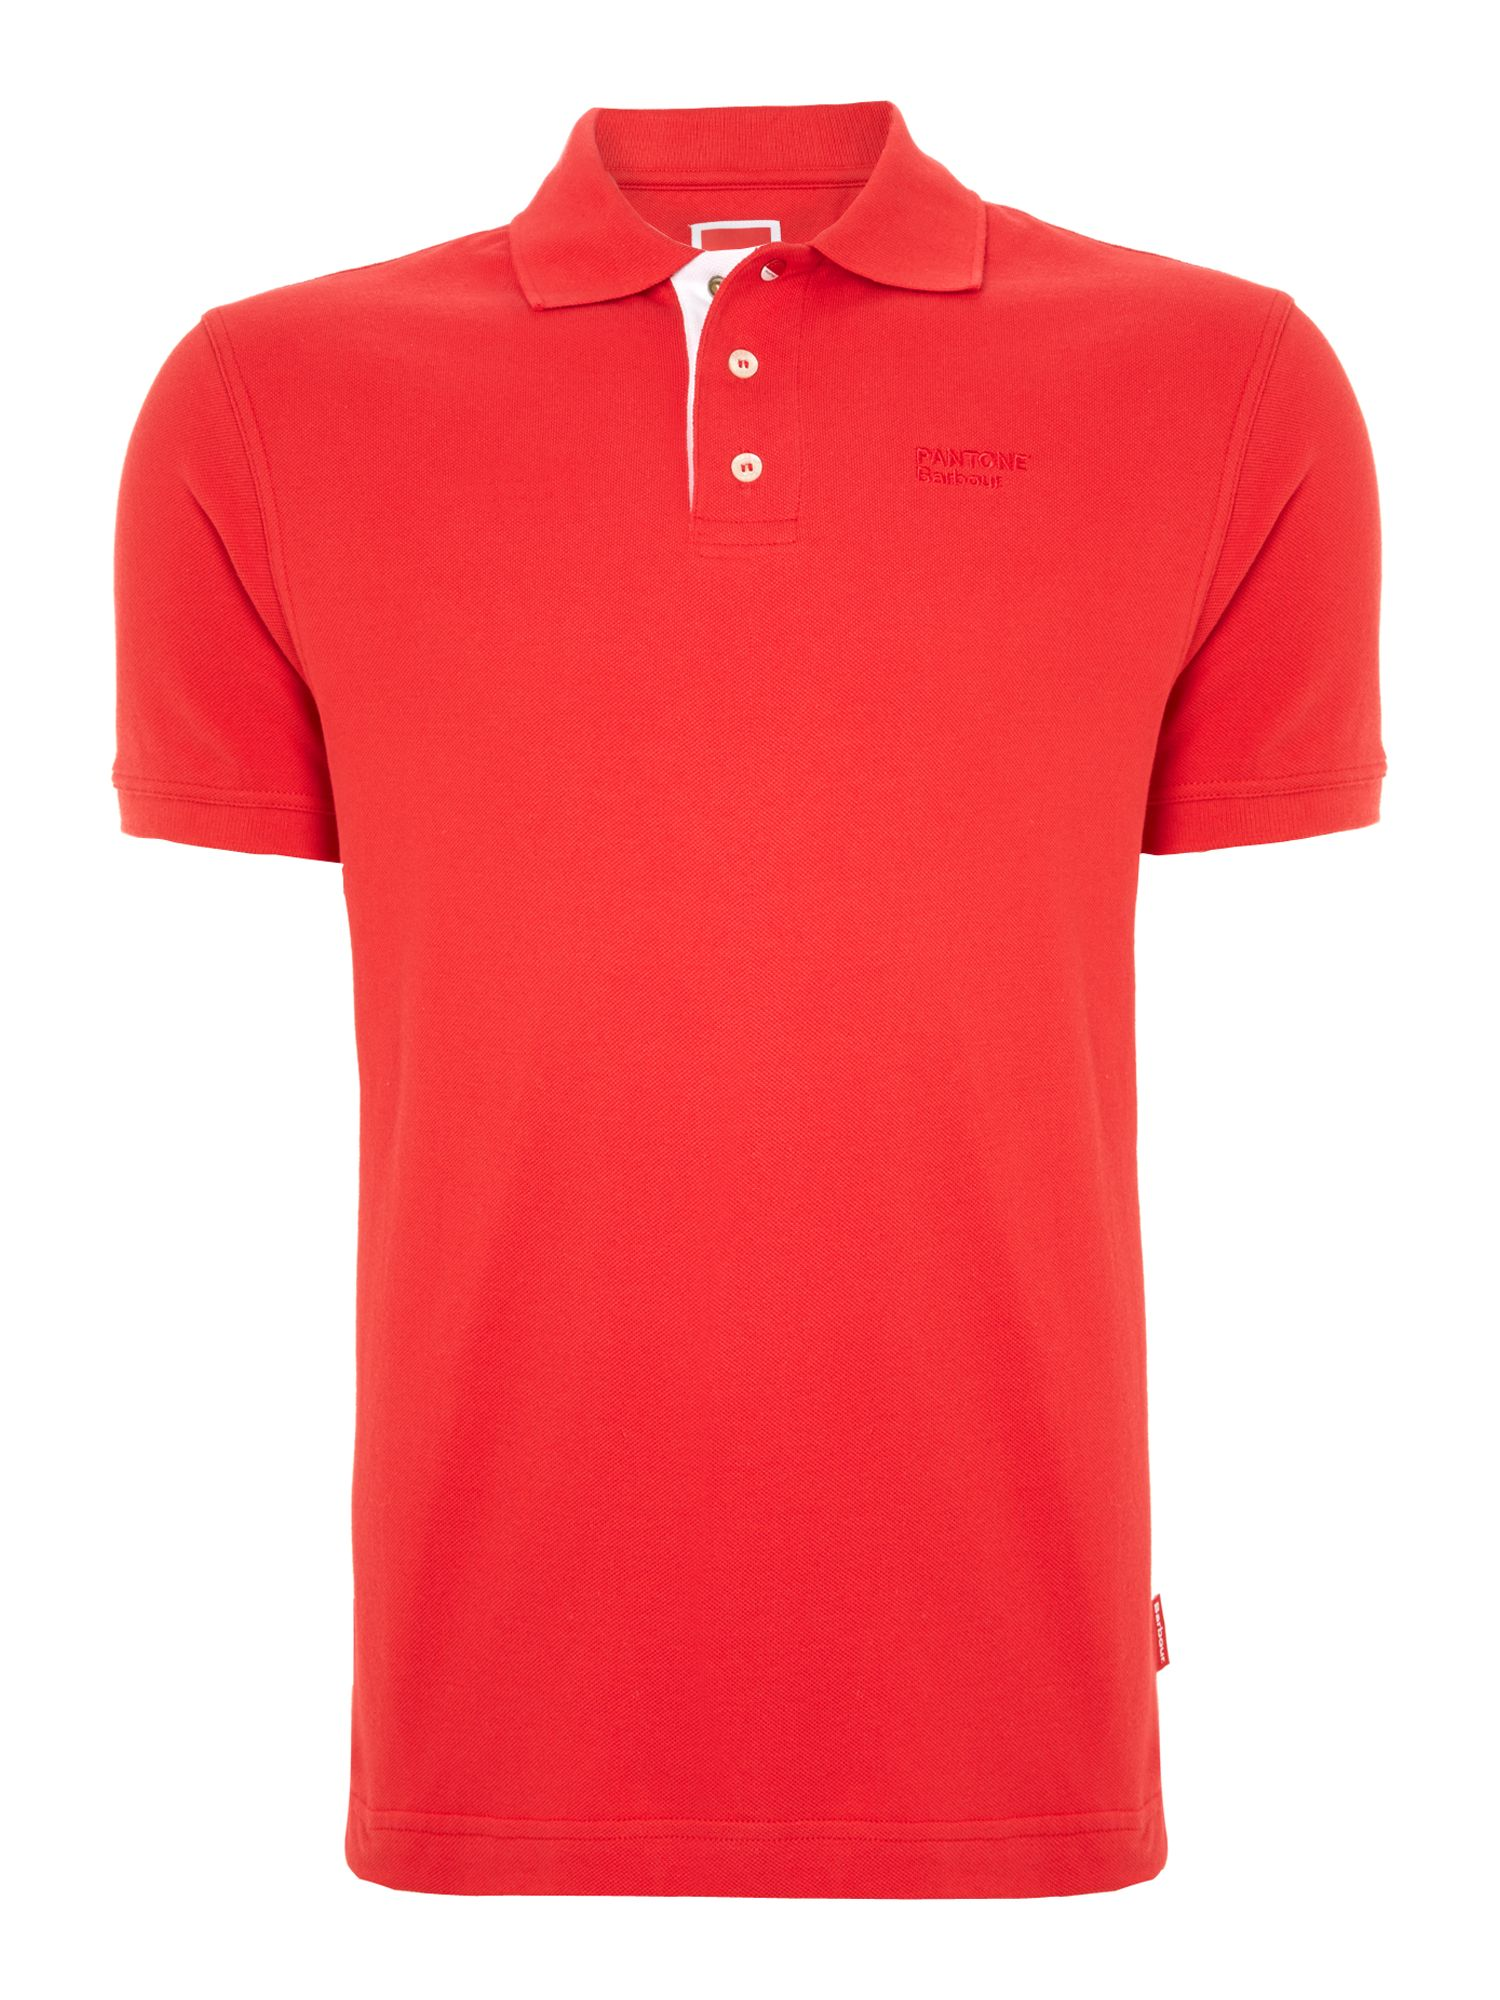 Pantone lifestyle polo